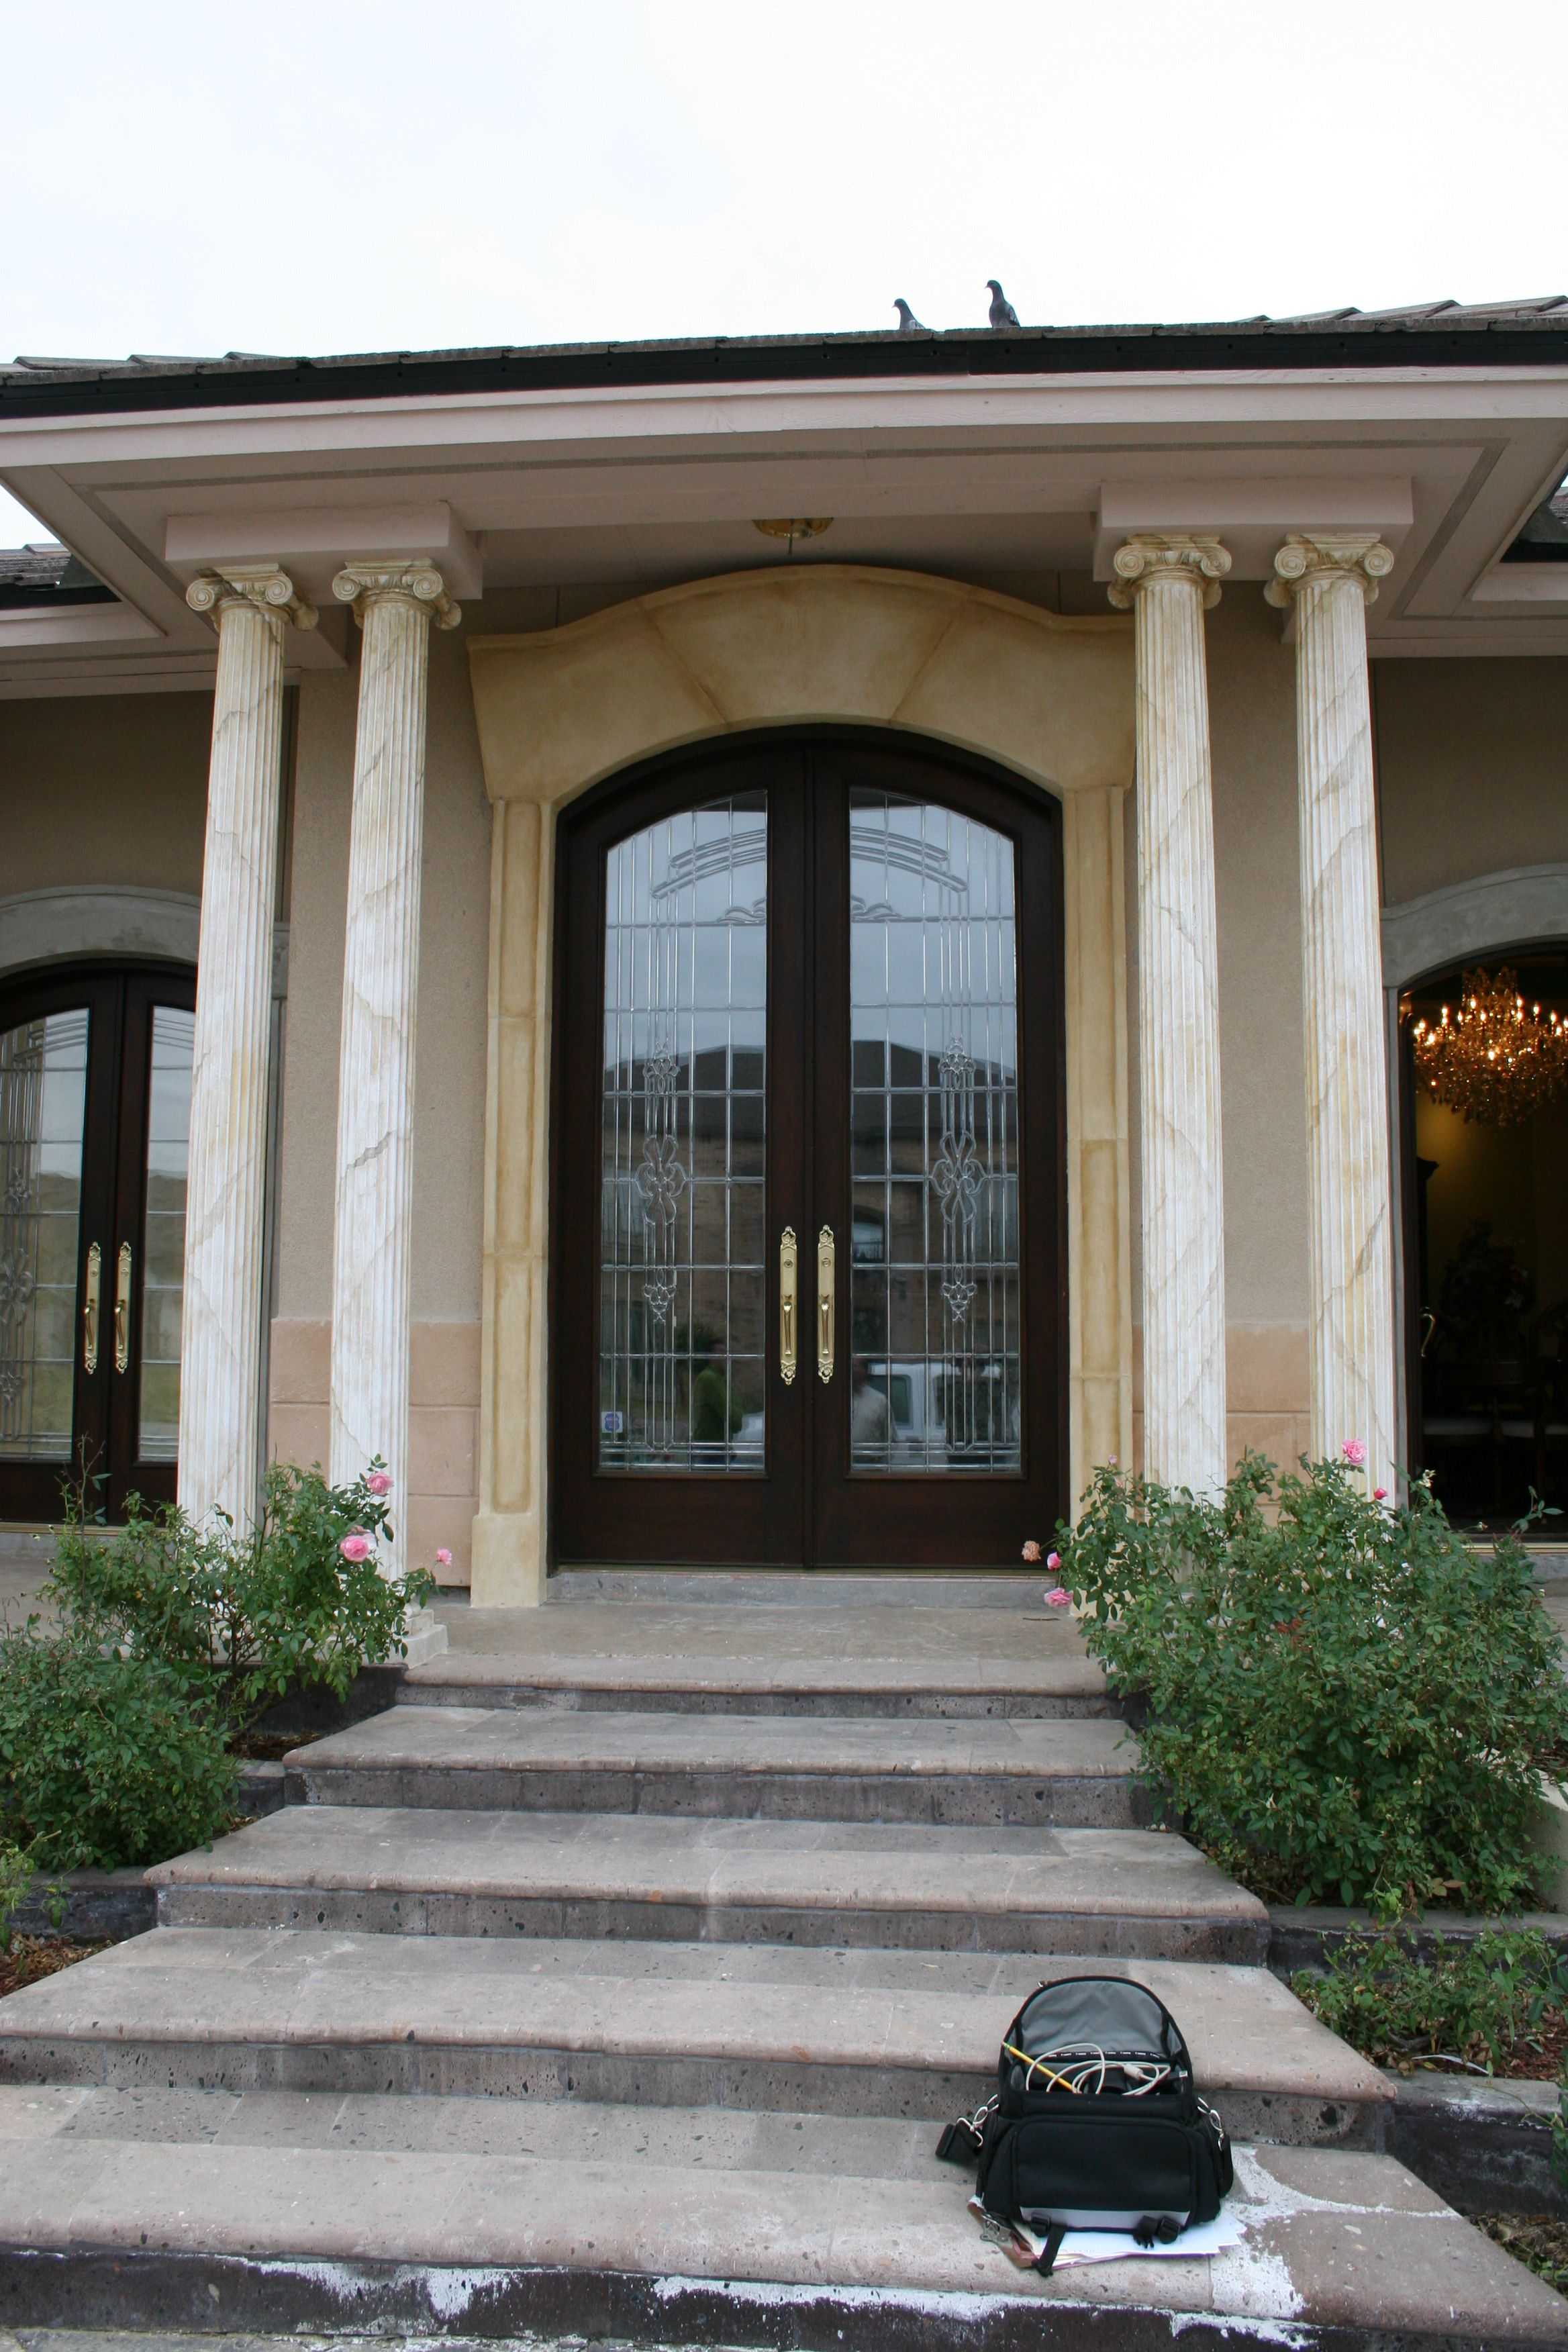 Grand Arched Entry Double Door With Lead Glass Designed Built And